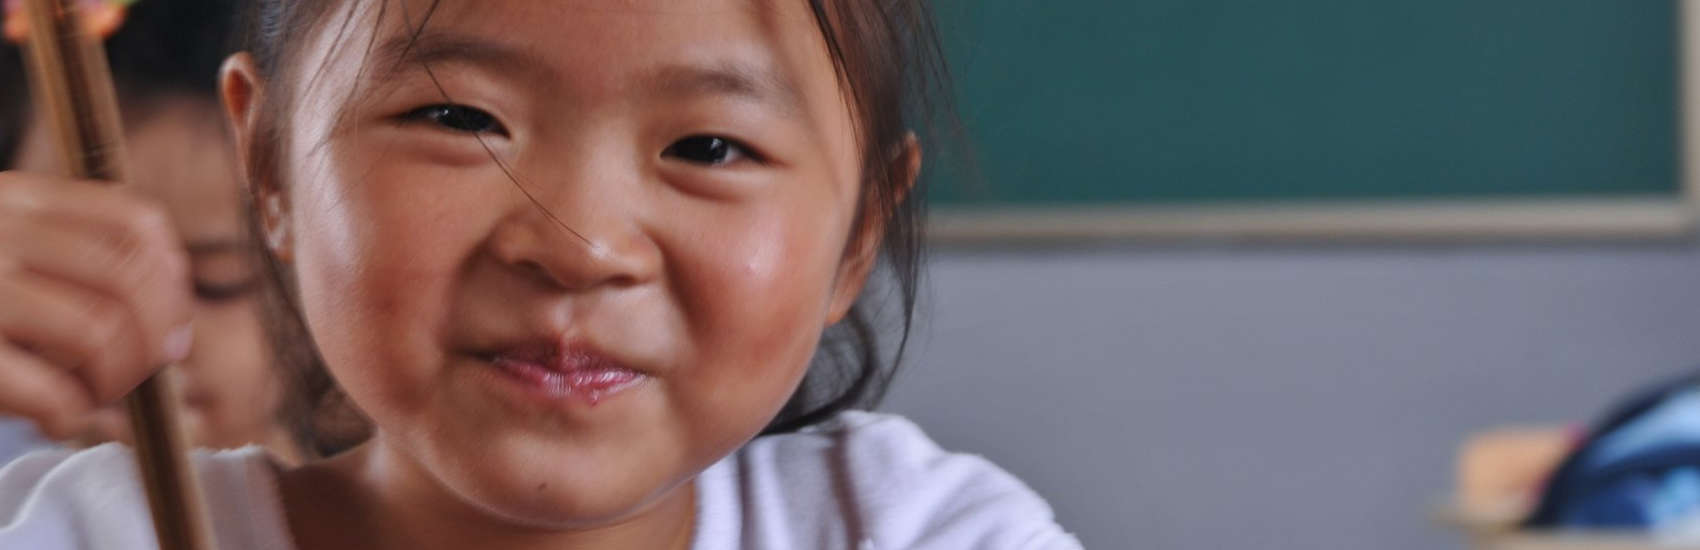 "A schoolgirl in Shanghai, eats with her chopsticks during ""Mr. Broccoli,"" a Save the Children program done in partnership with IKEA. Photo credit: Save the Children, October 2011."